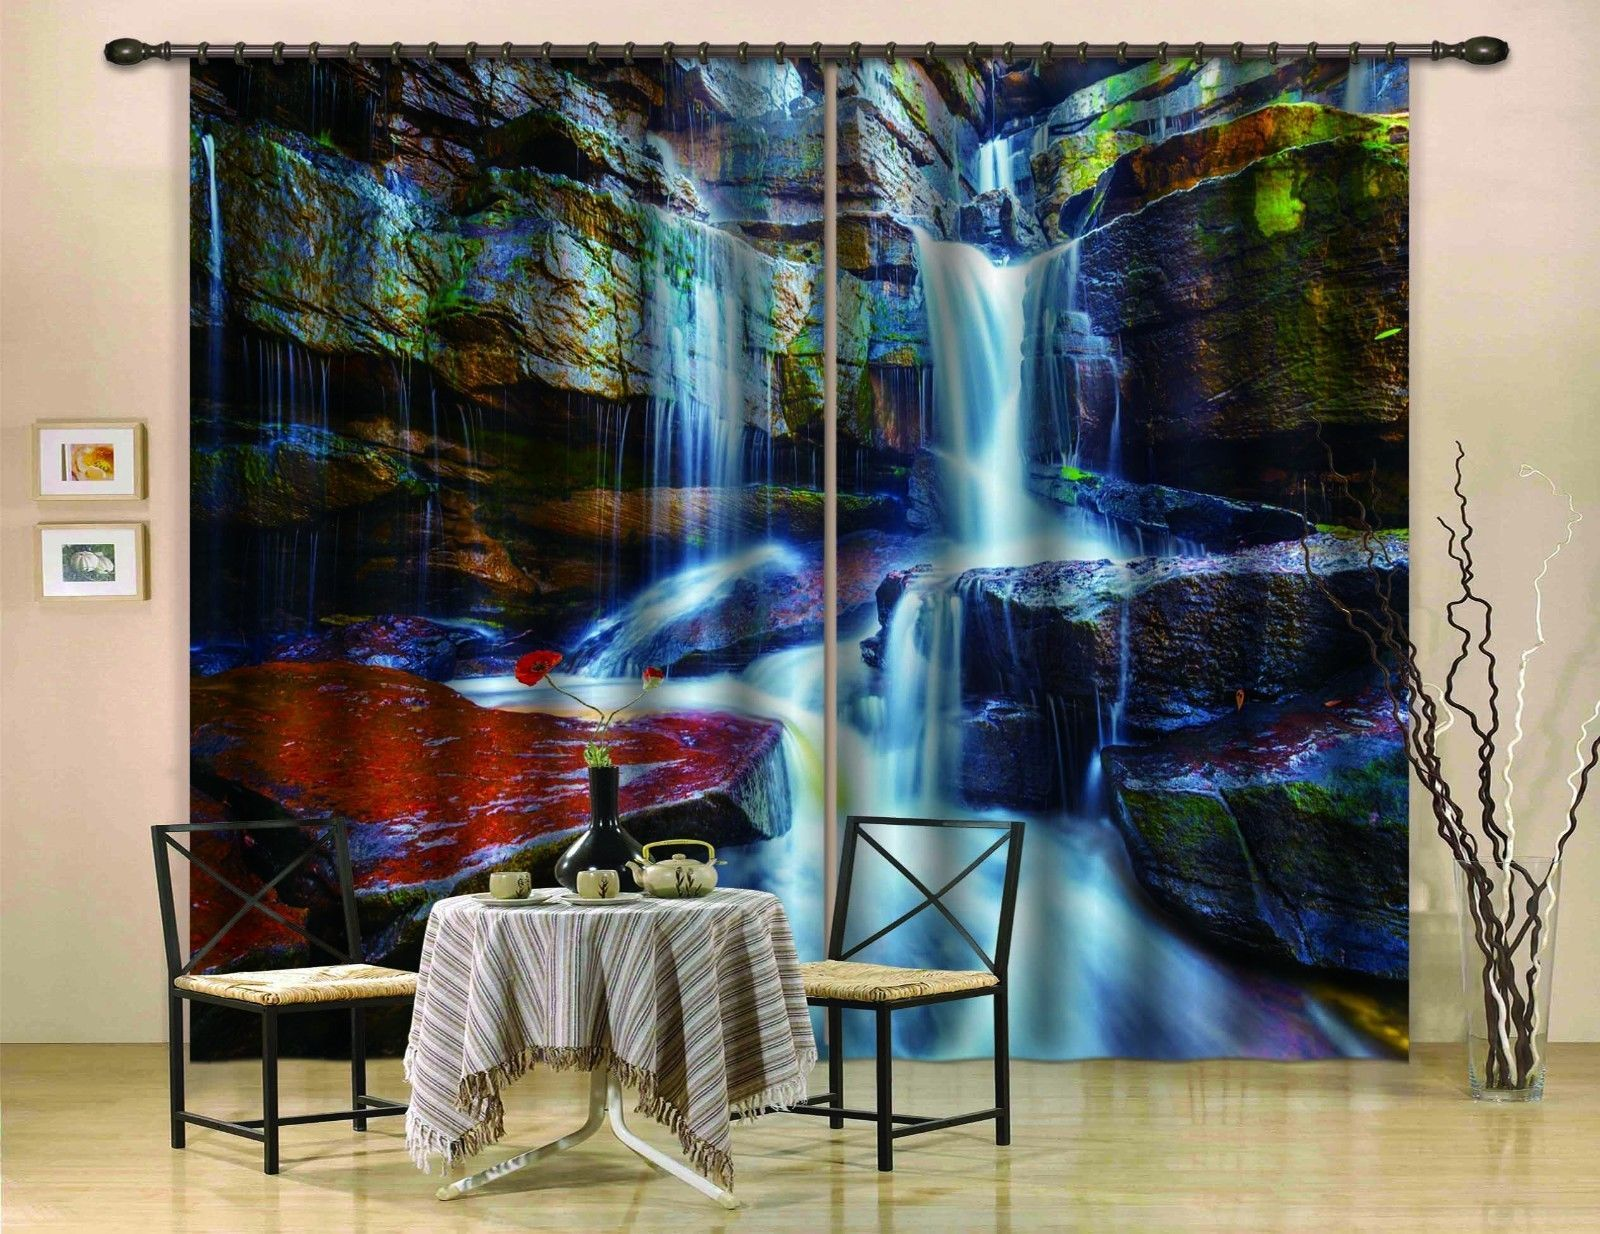 Primary image for 3D Stone River0391 Blockout Photo Curtain Print Curtains Drapes Fabric Window UK